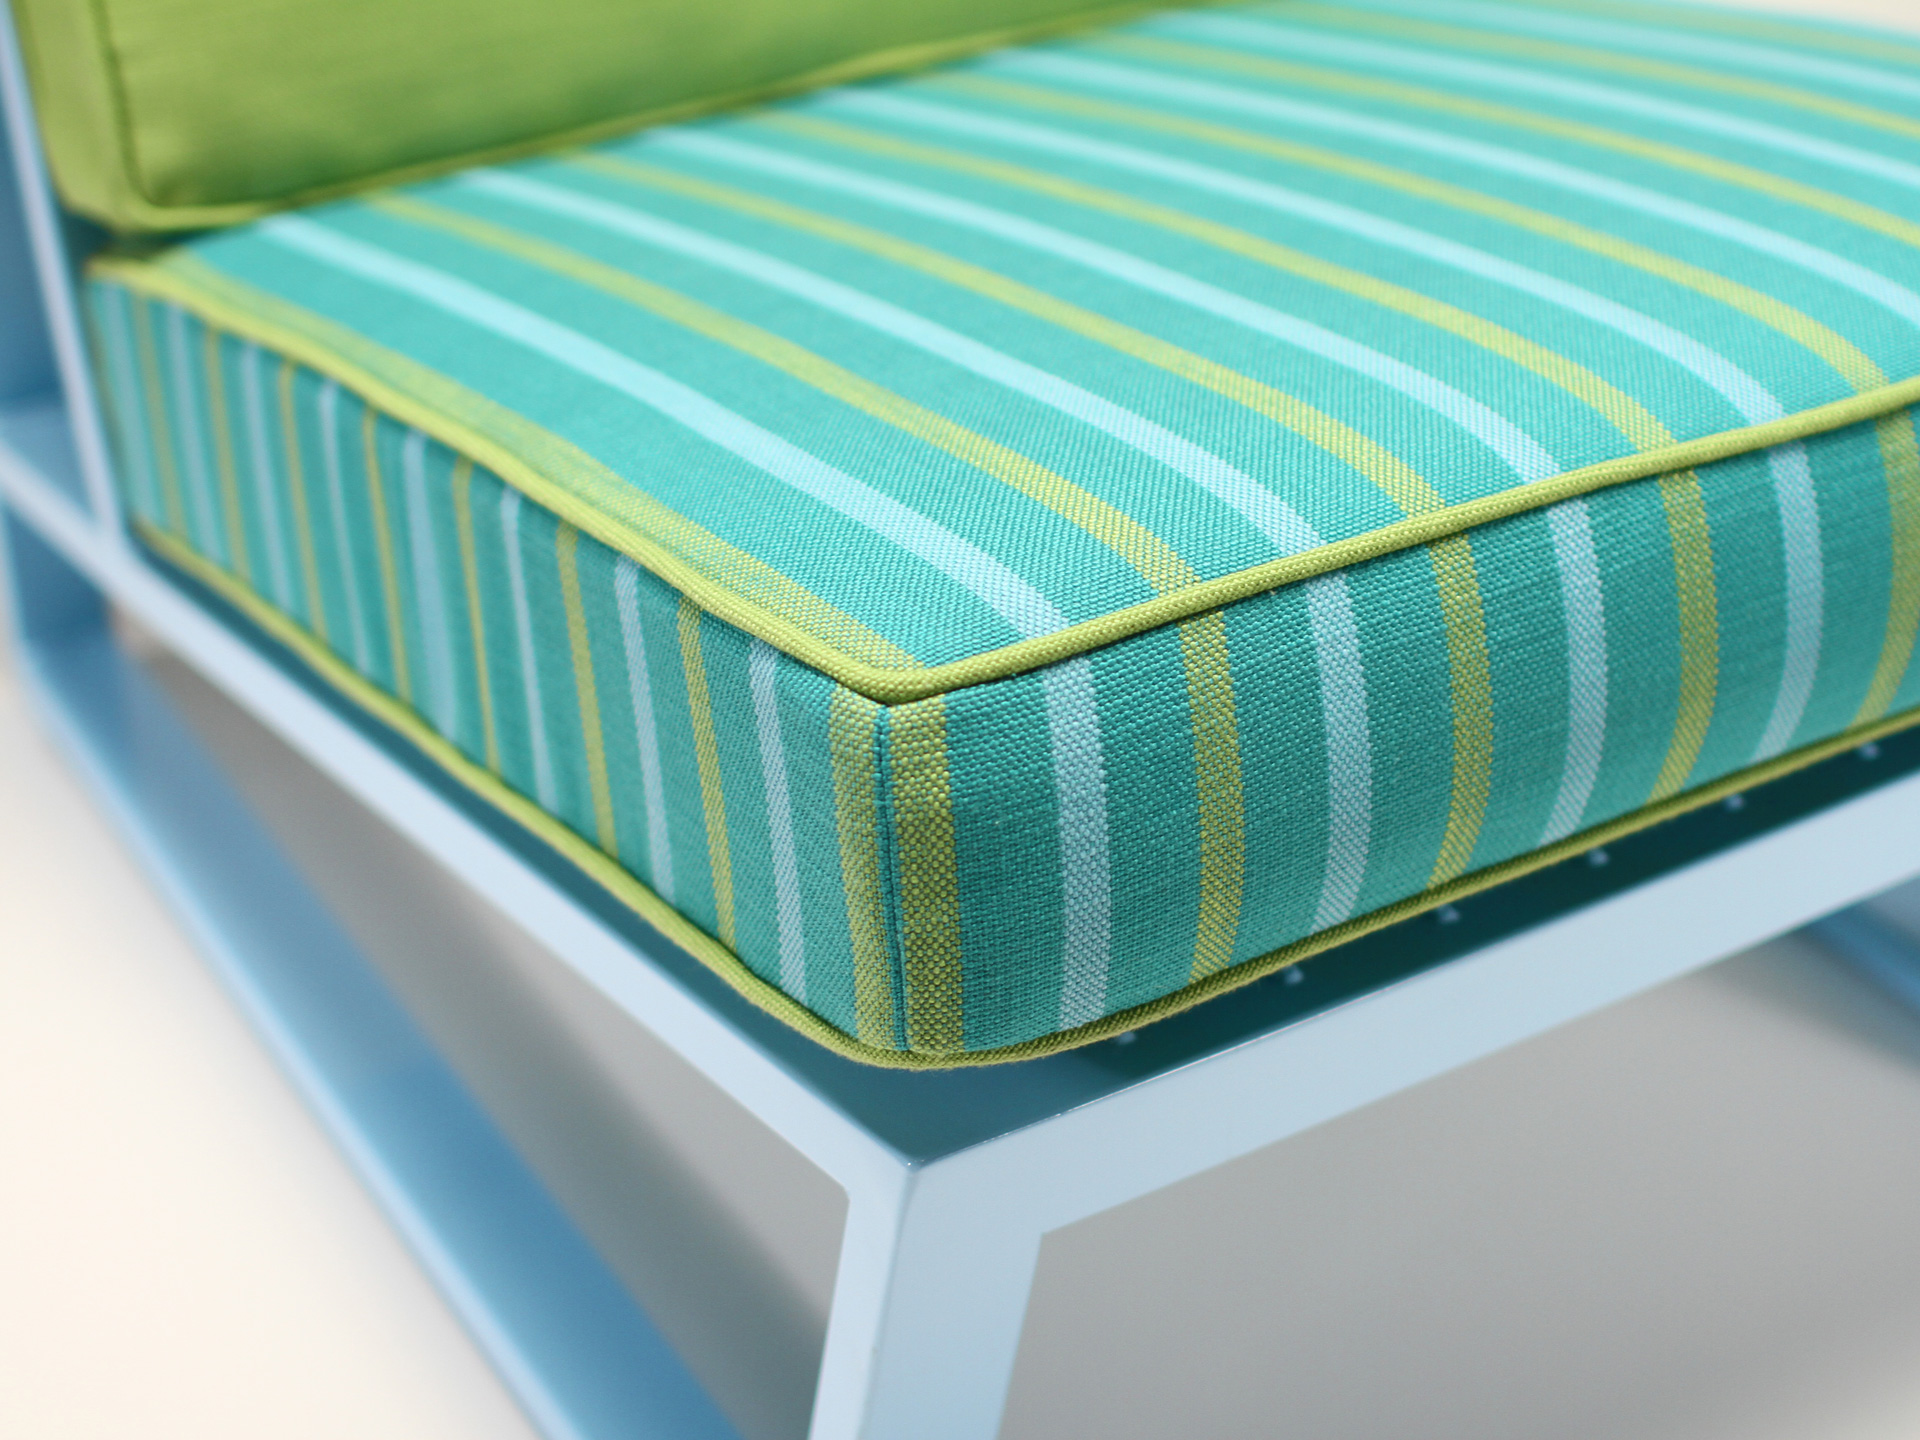 Detail of Del Calle chair cushion and front